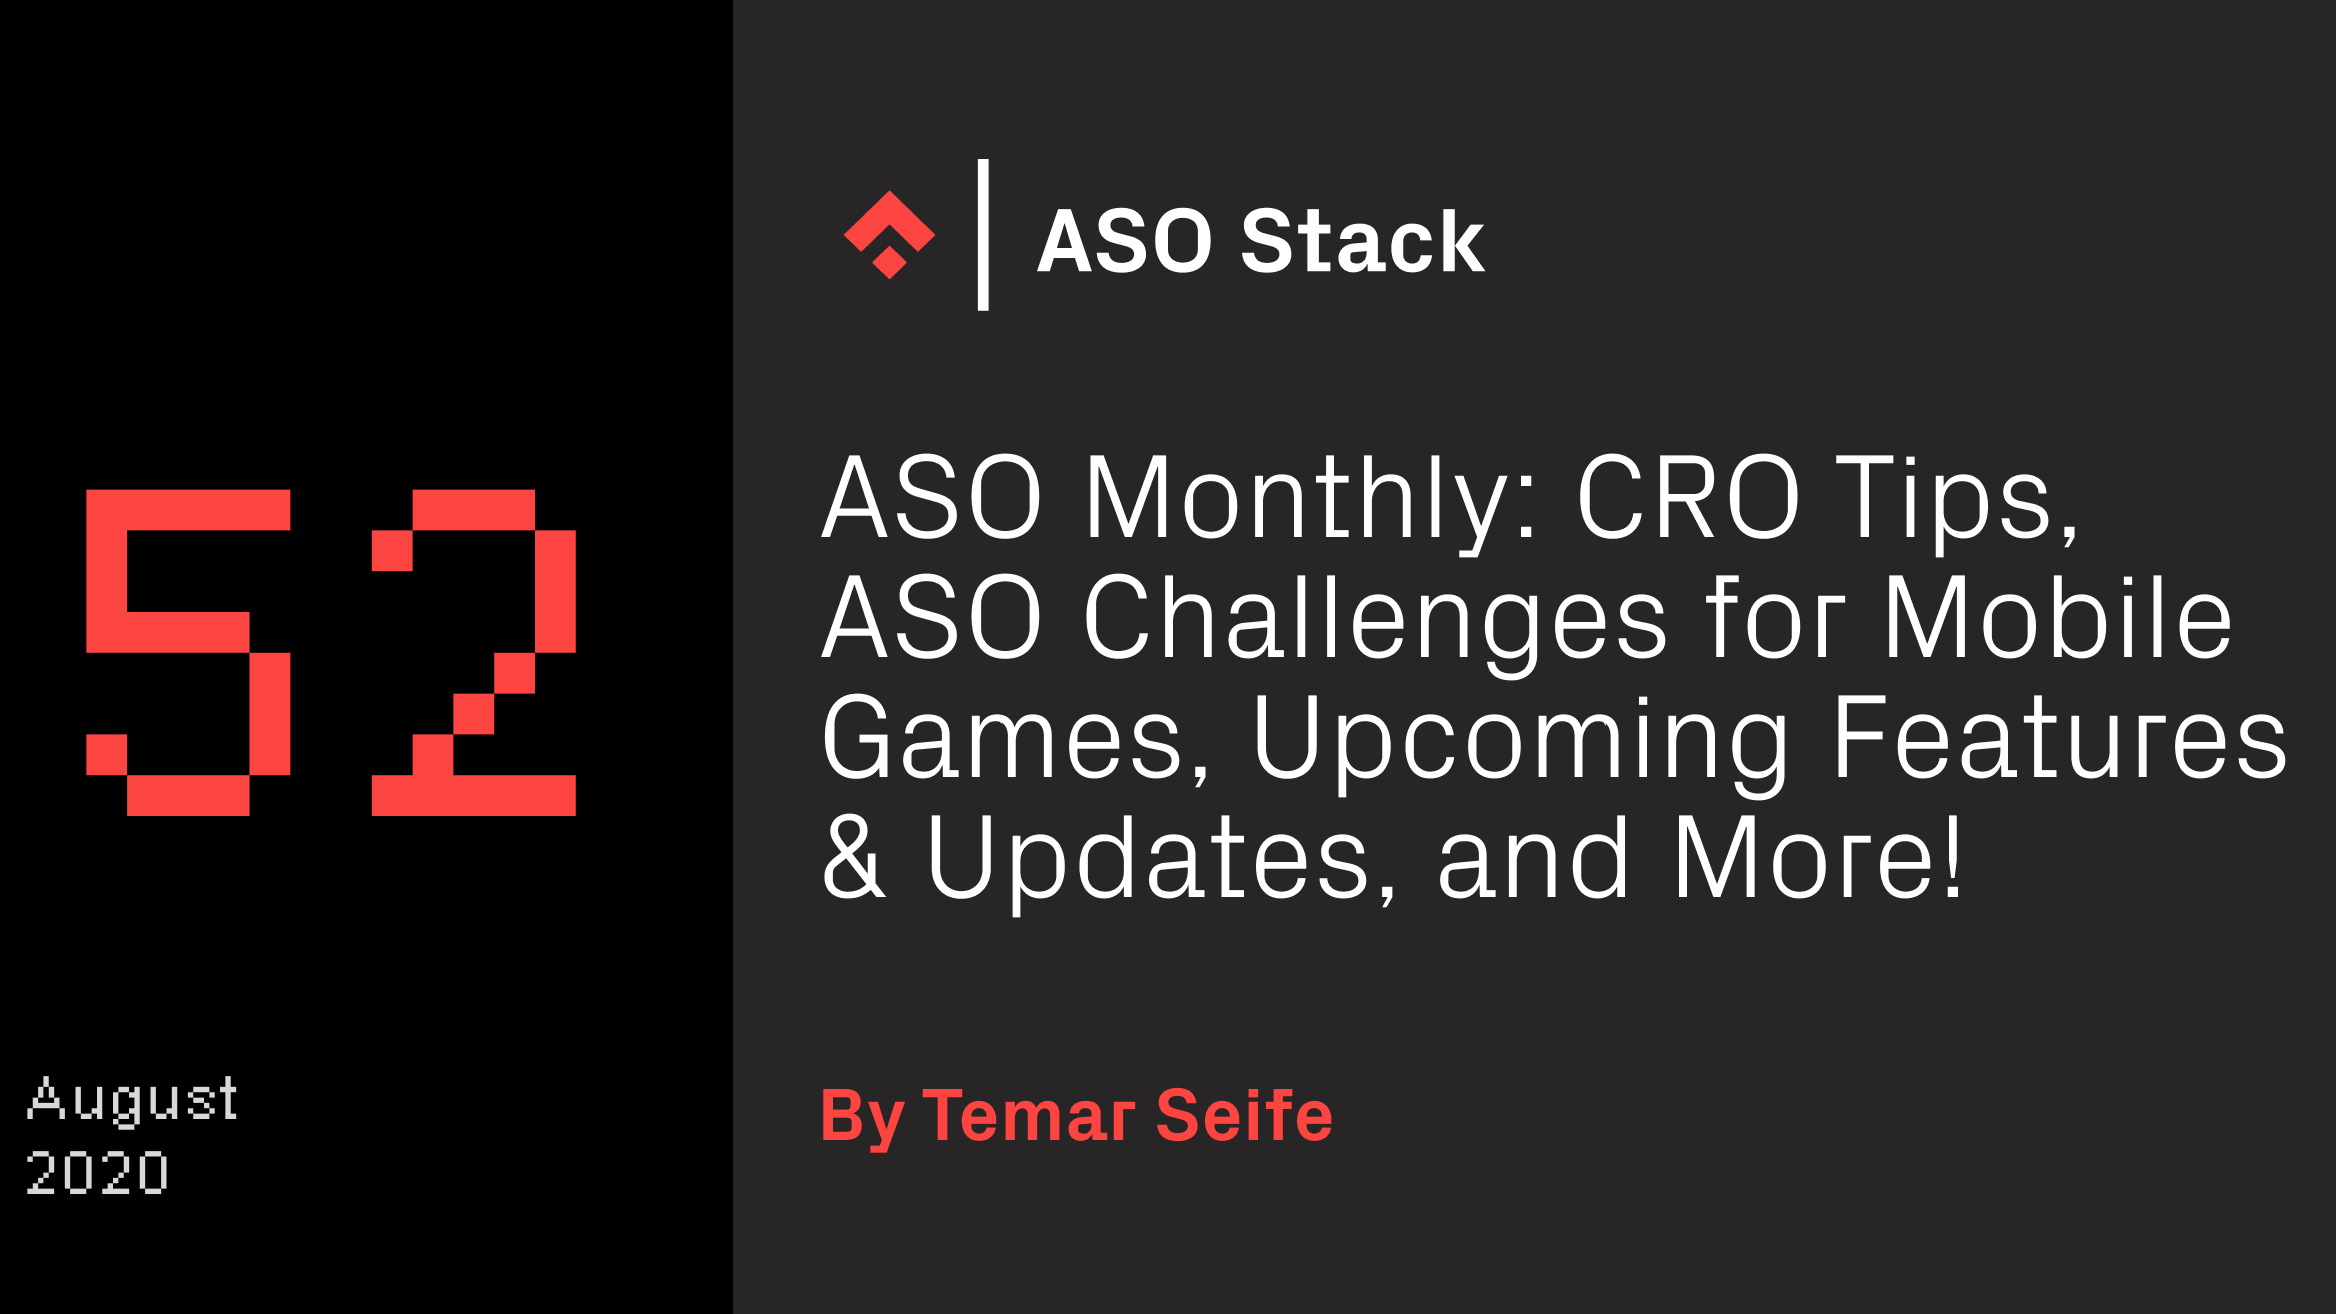 aso monthly 51 august 2020